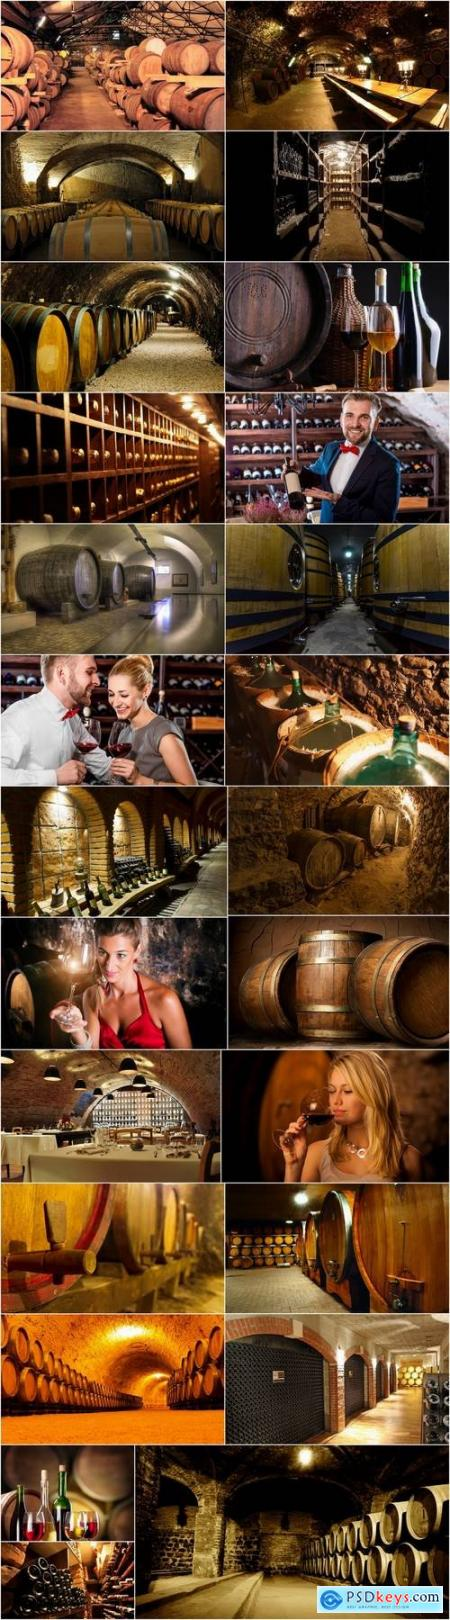 Wine cellar barrel room capacity basement 25 HQ Jpeg